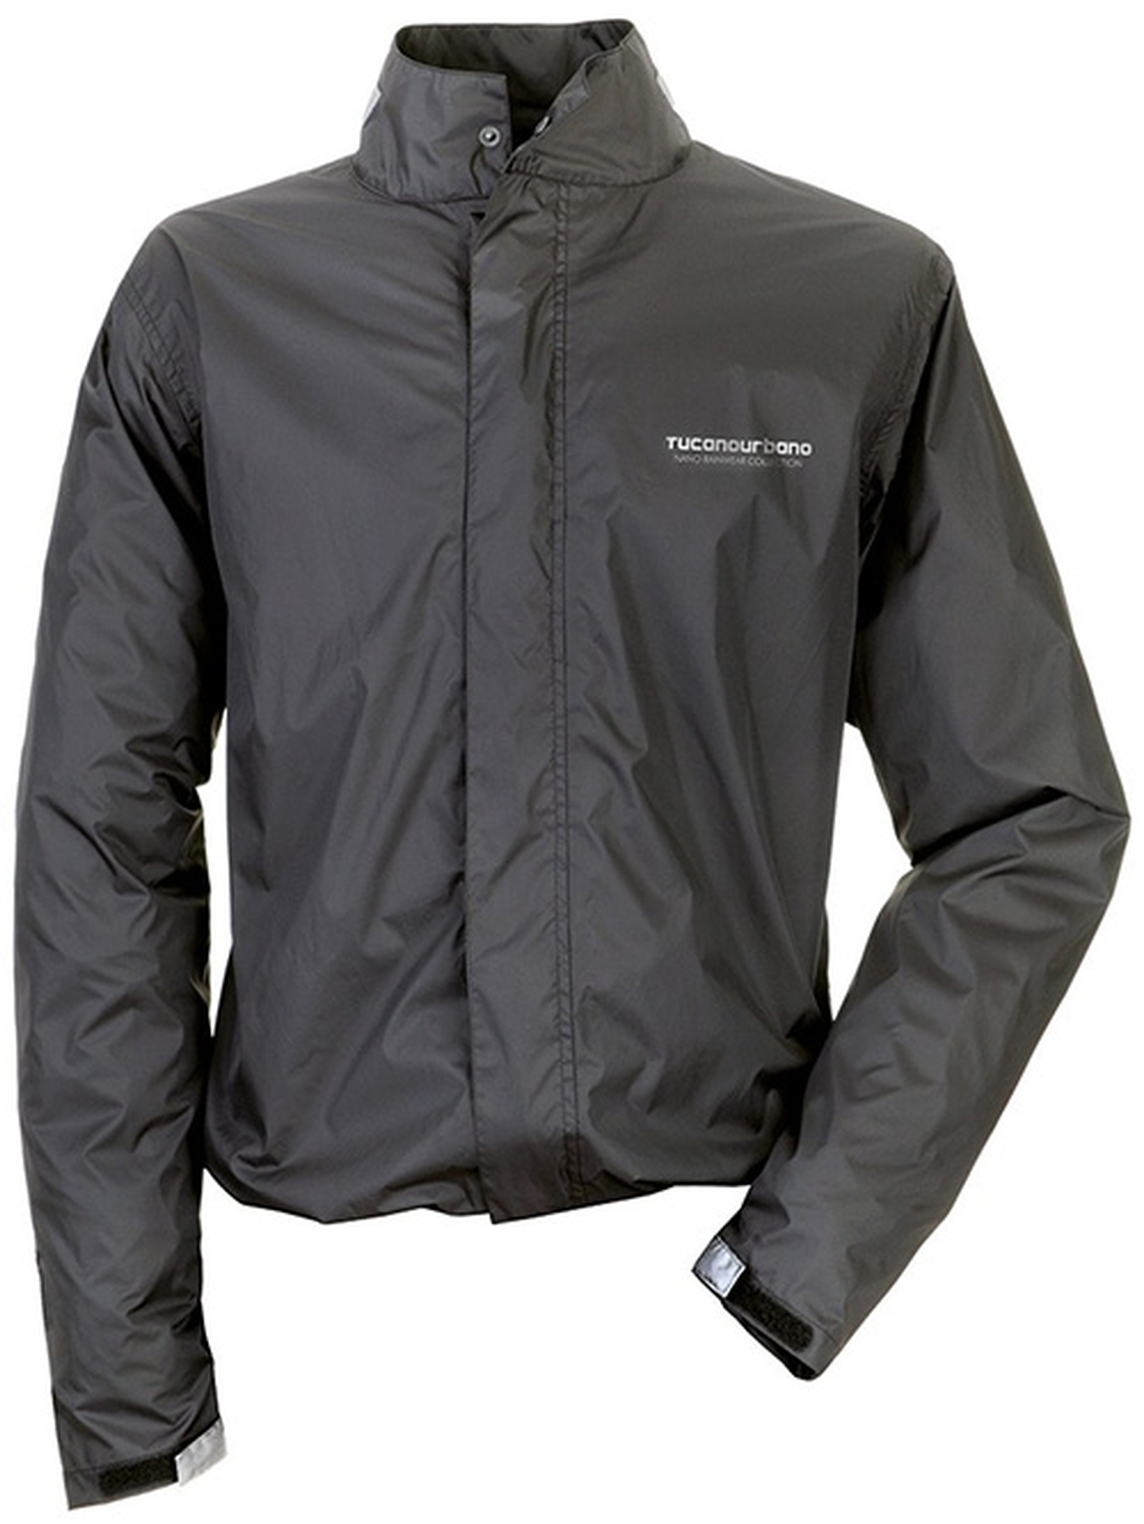 Details about Jacket Waterproof Woman Supercompattabile Tucano Urbano Nano Lady plus Black